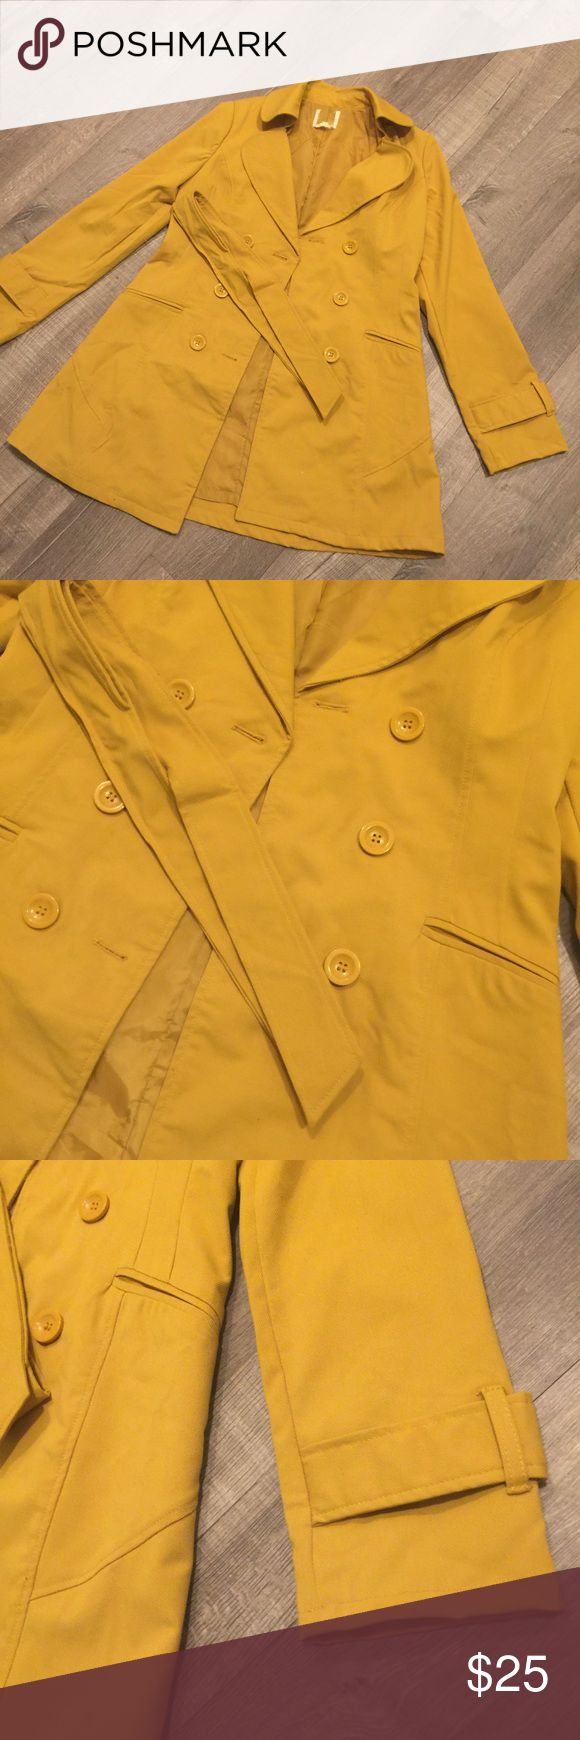 Mustard Yellow Trench Coat Mustard yellow trench coat! Has a belt, and perfect pop of color for winter/fall. Jackets & Coats Trench Coats